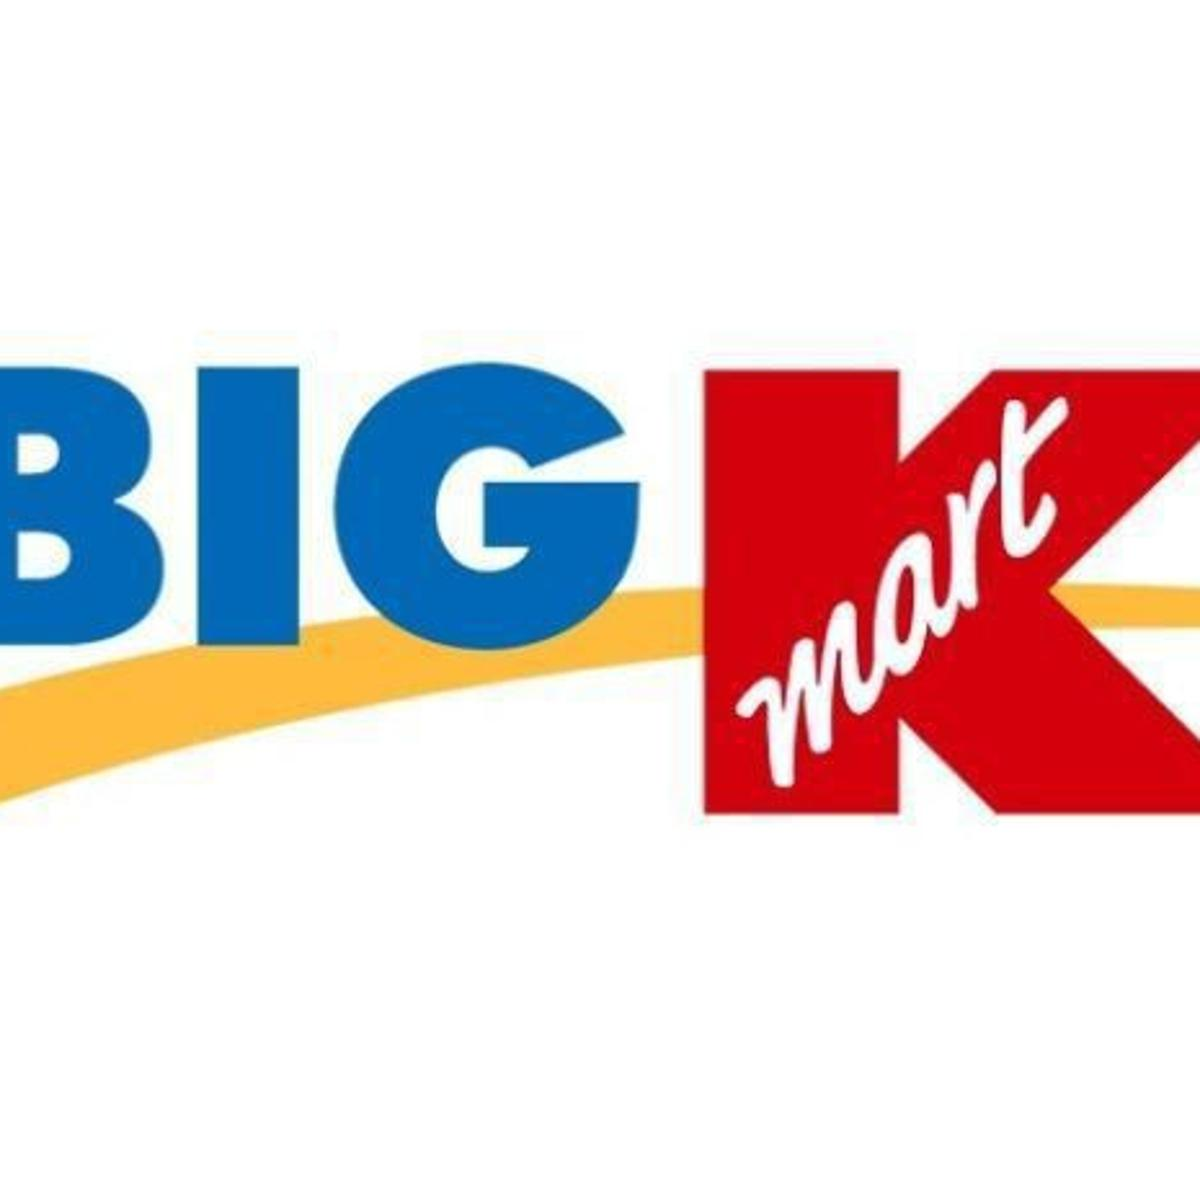 Moline Kmart to close following Sears bankruptcy filing | Economy ...